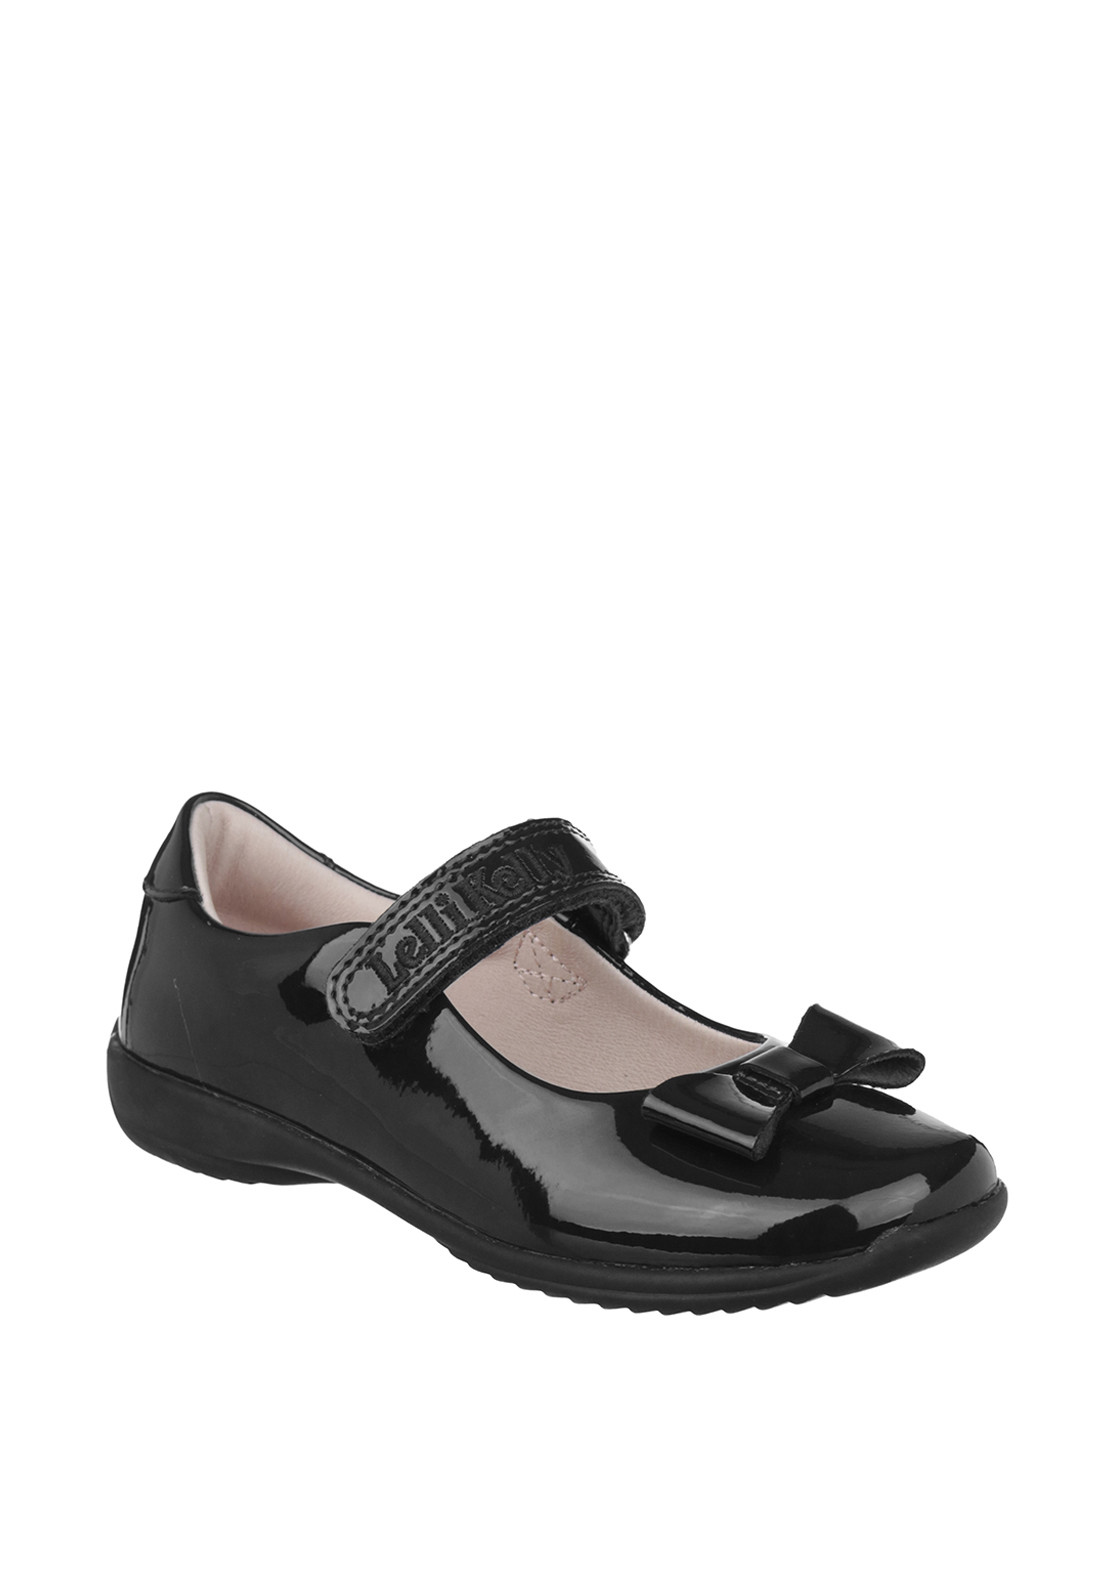 Lelli Kelly Girls Patent Leather Mary Jane School Shoes, Black